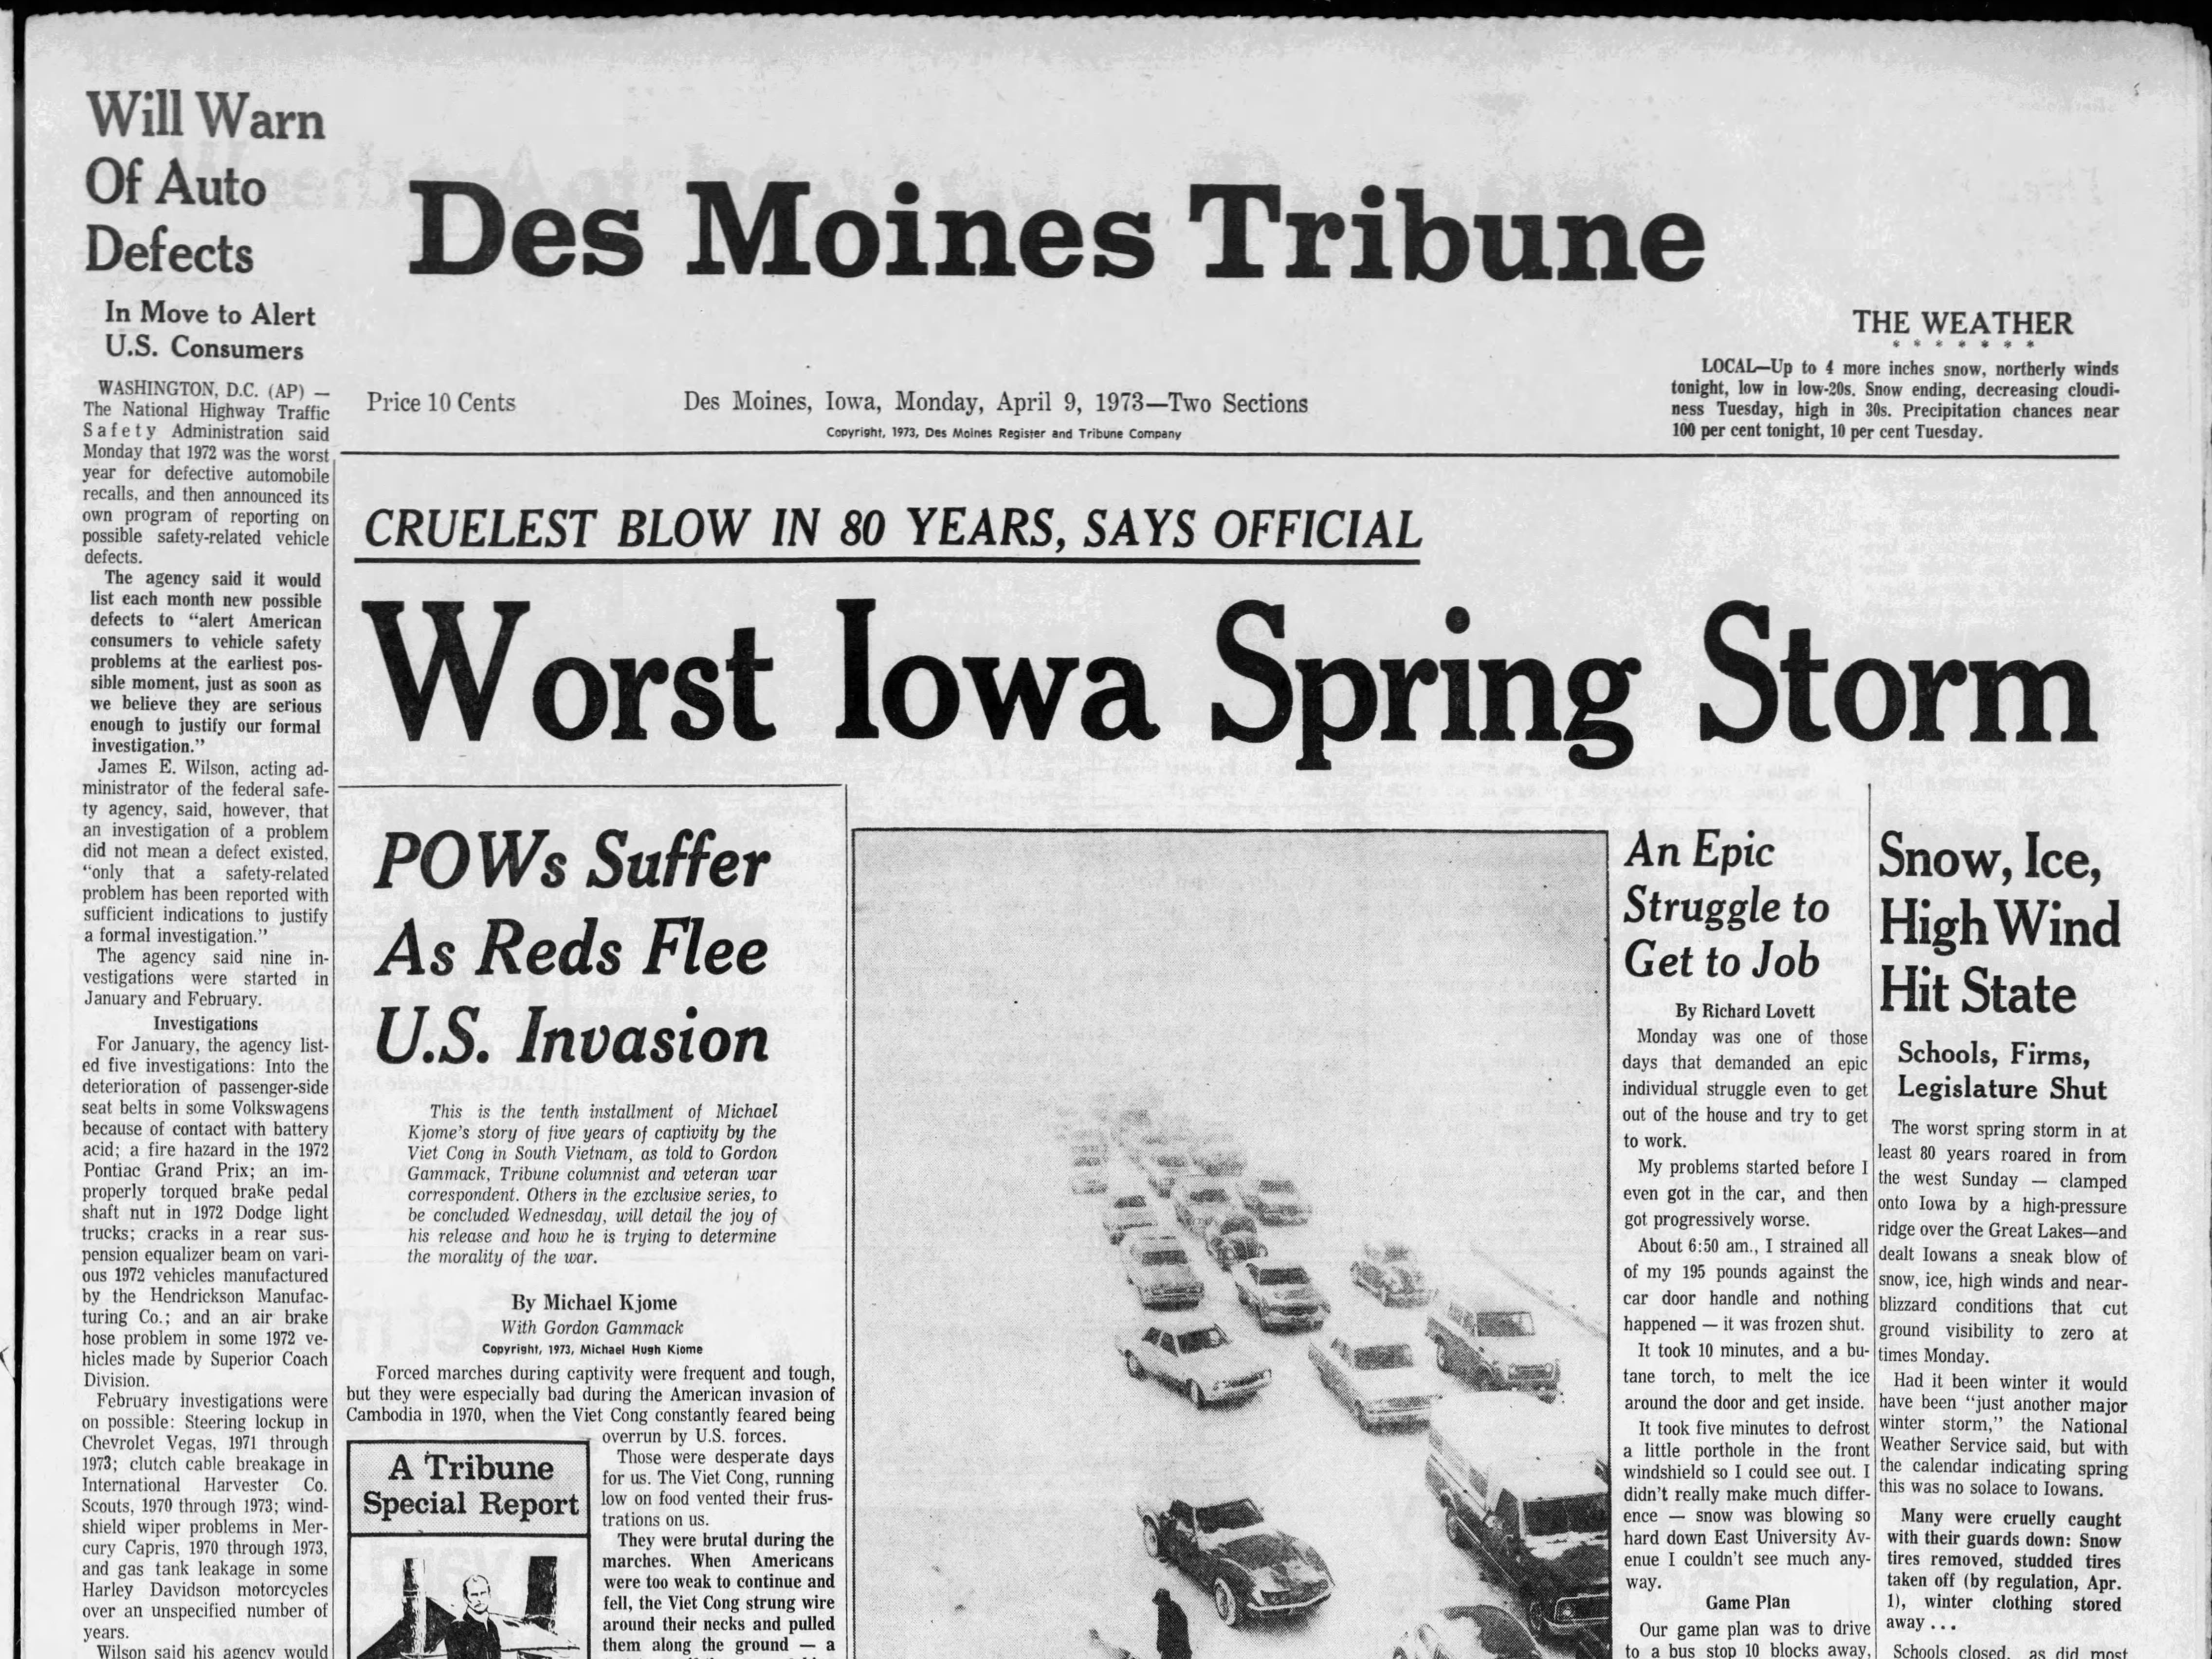 Page 1A of the April 9, 1973 Des Moines Tribune, with coverage of one of the worst spring blizzards ever recorded in April.